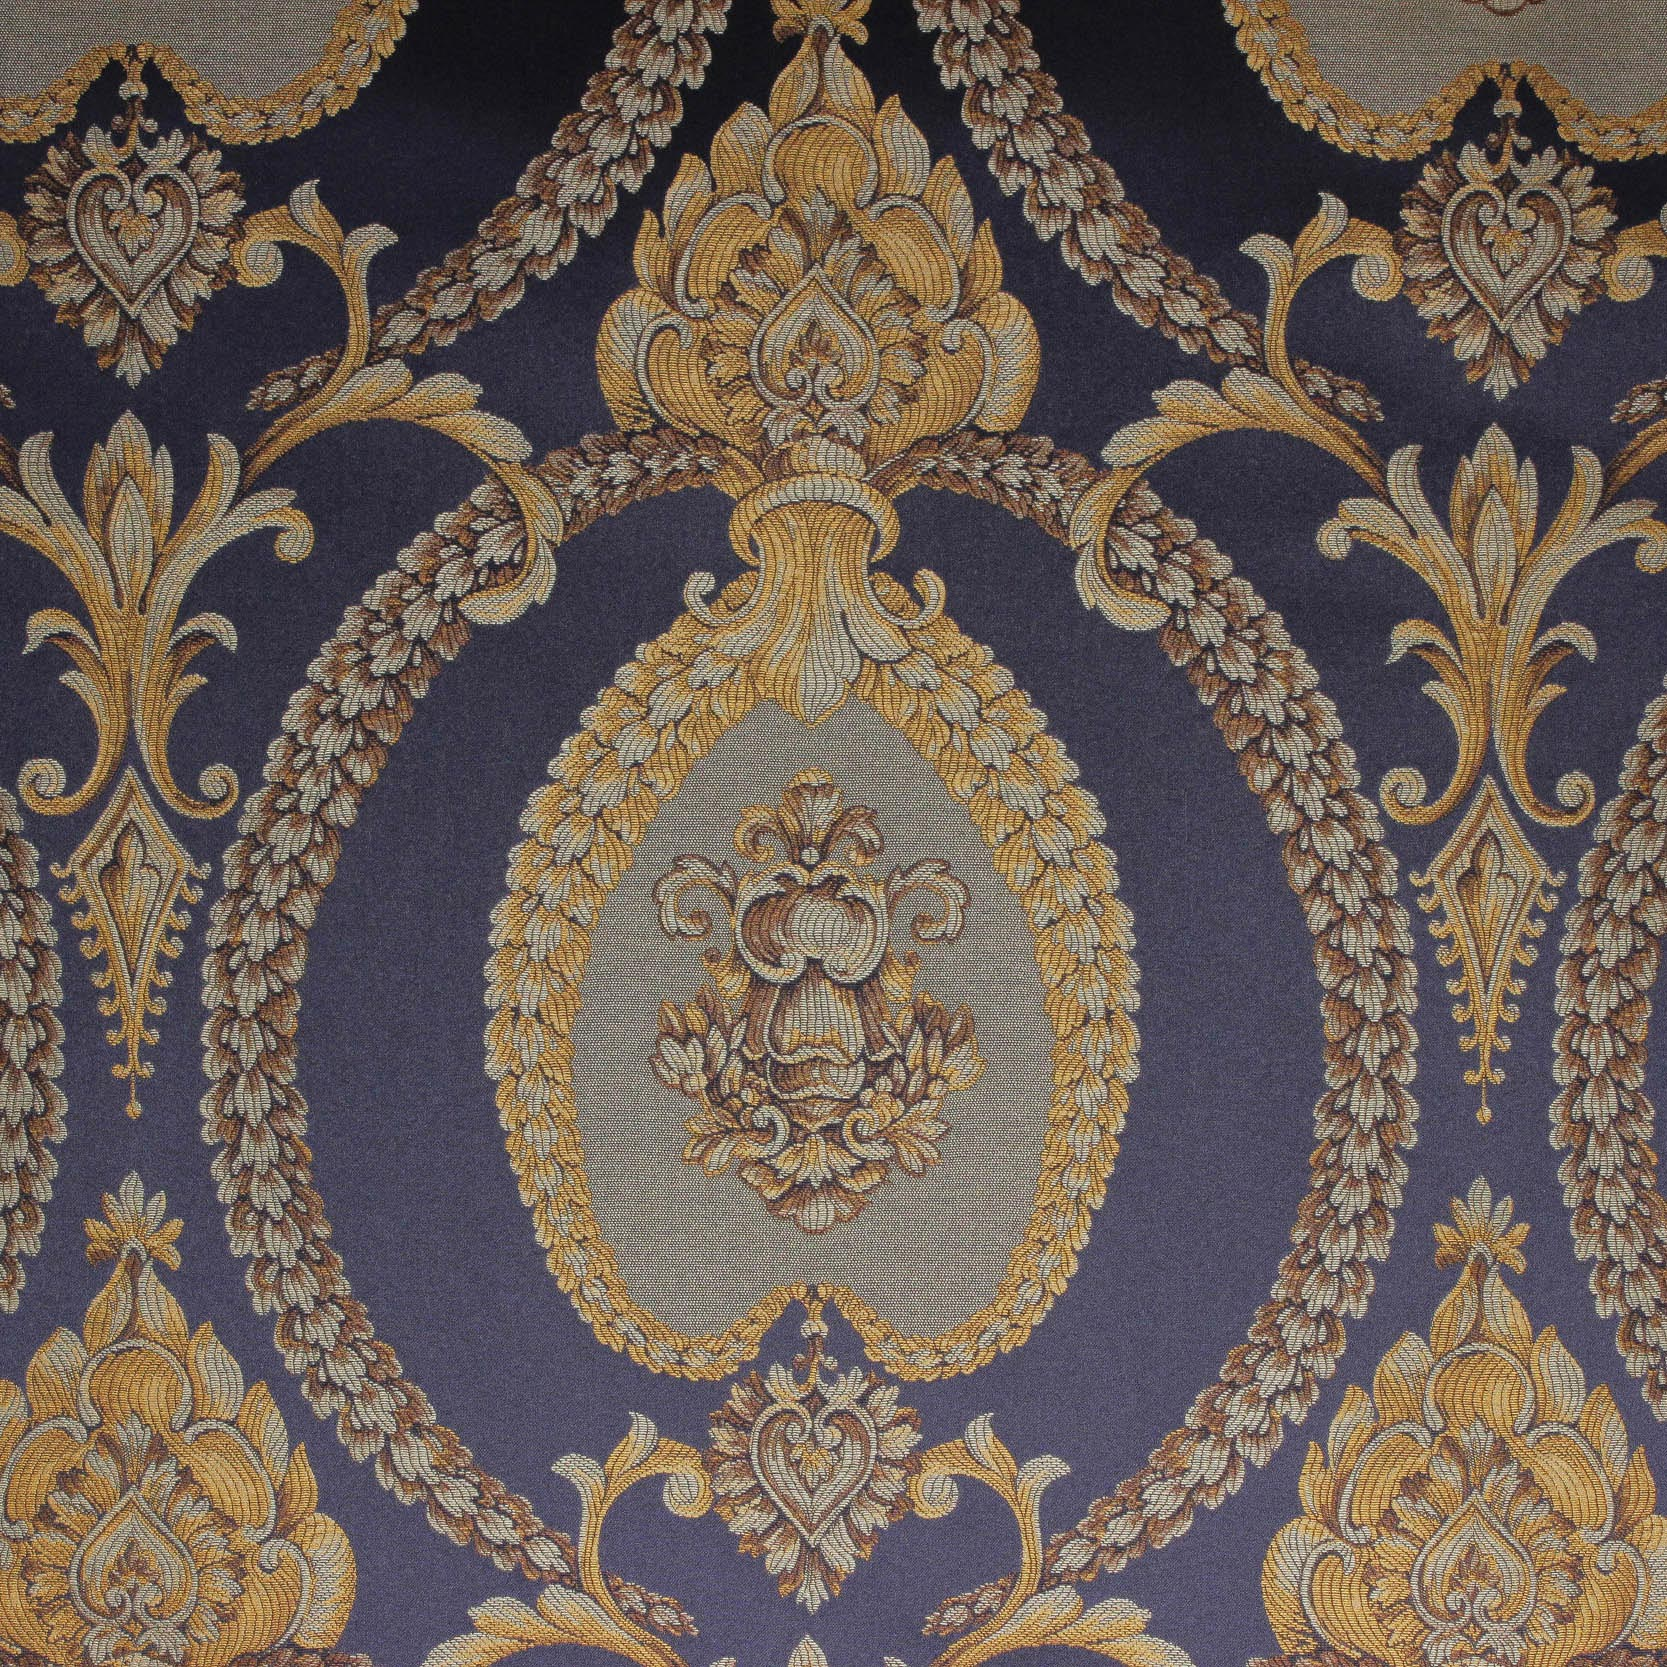 Damask 80737 50038 Navy Gold The Fabric Mill